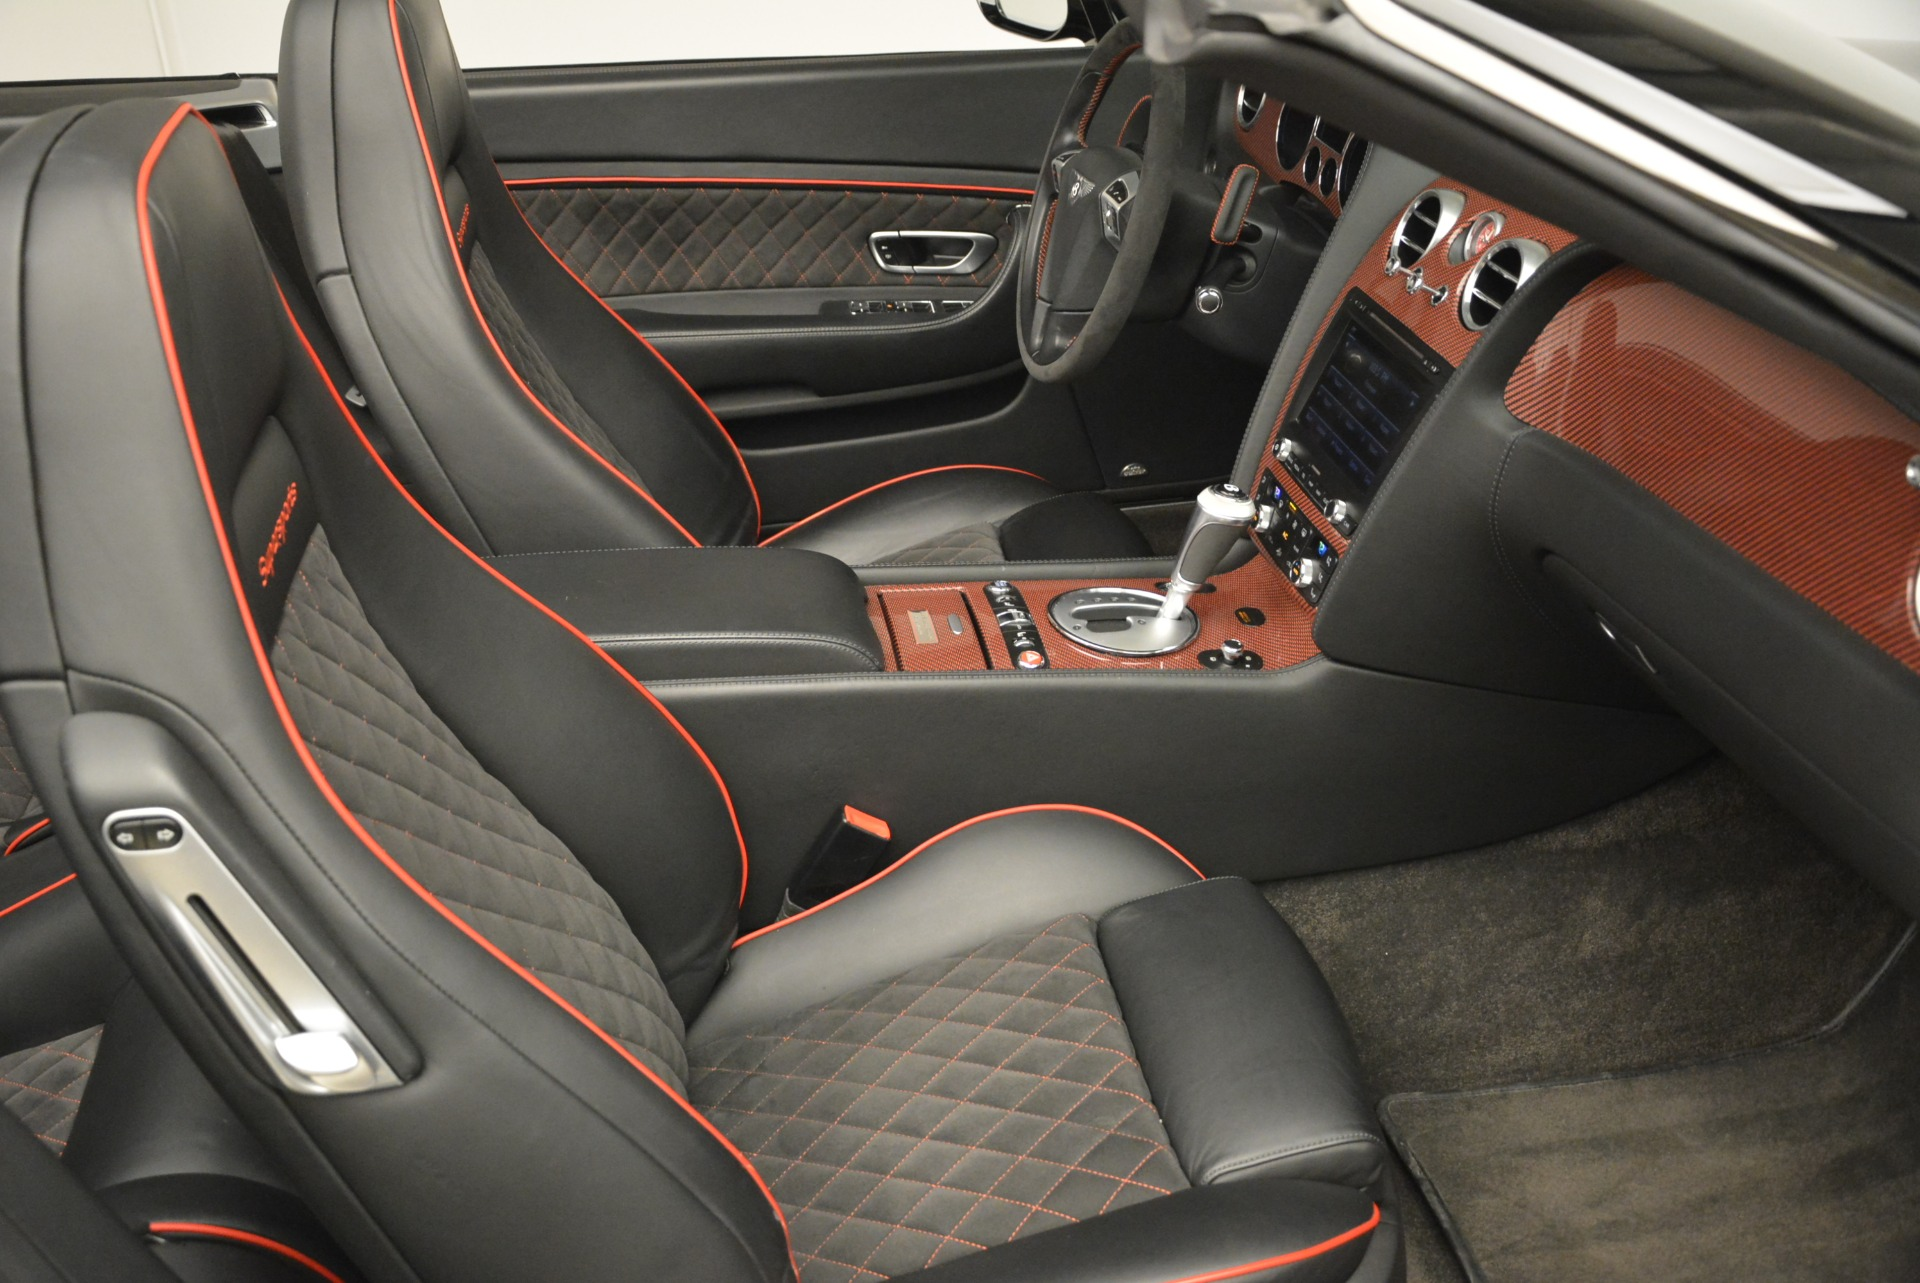 Used 2013 Bentley Continental GT Supersports Convertible ISR For Sale In Westport, CT 2151_p47